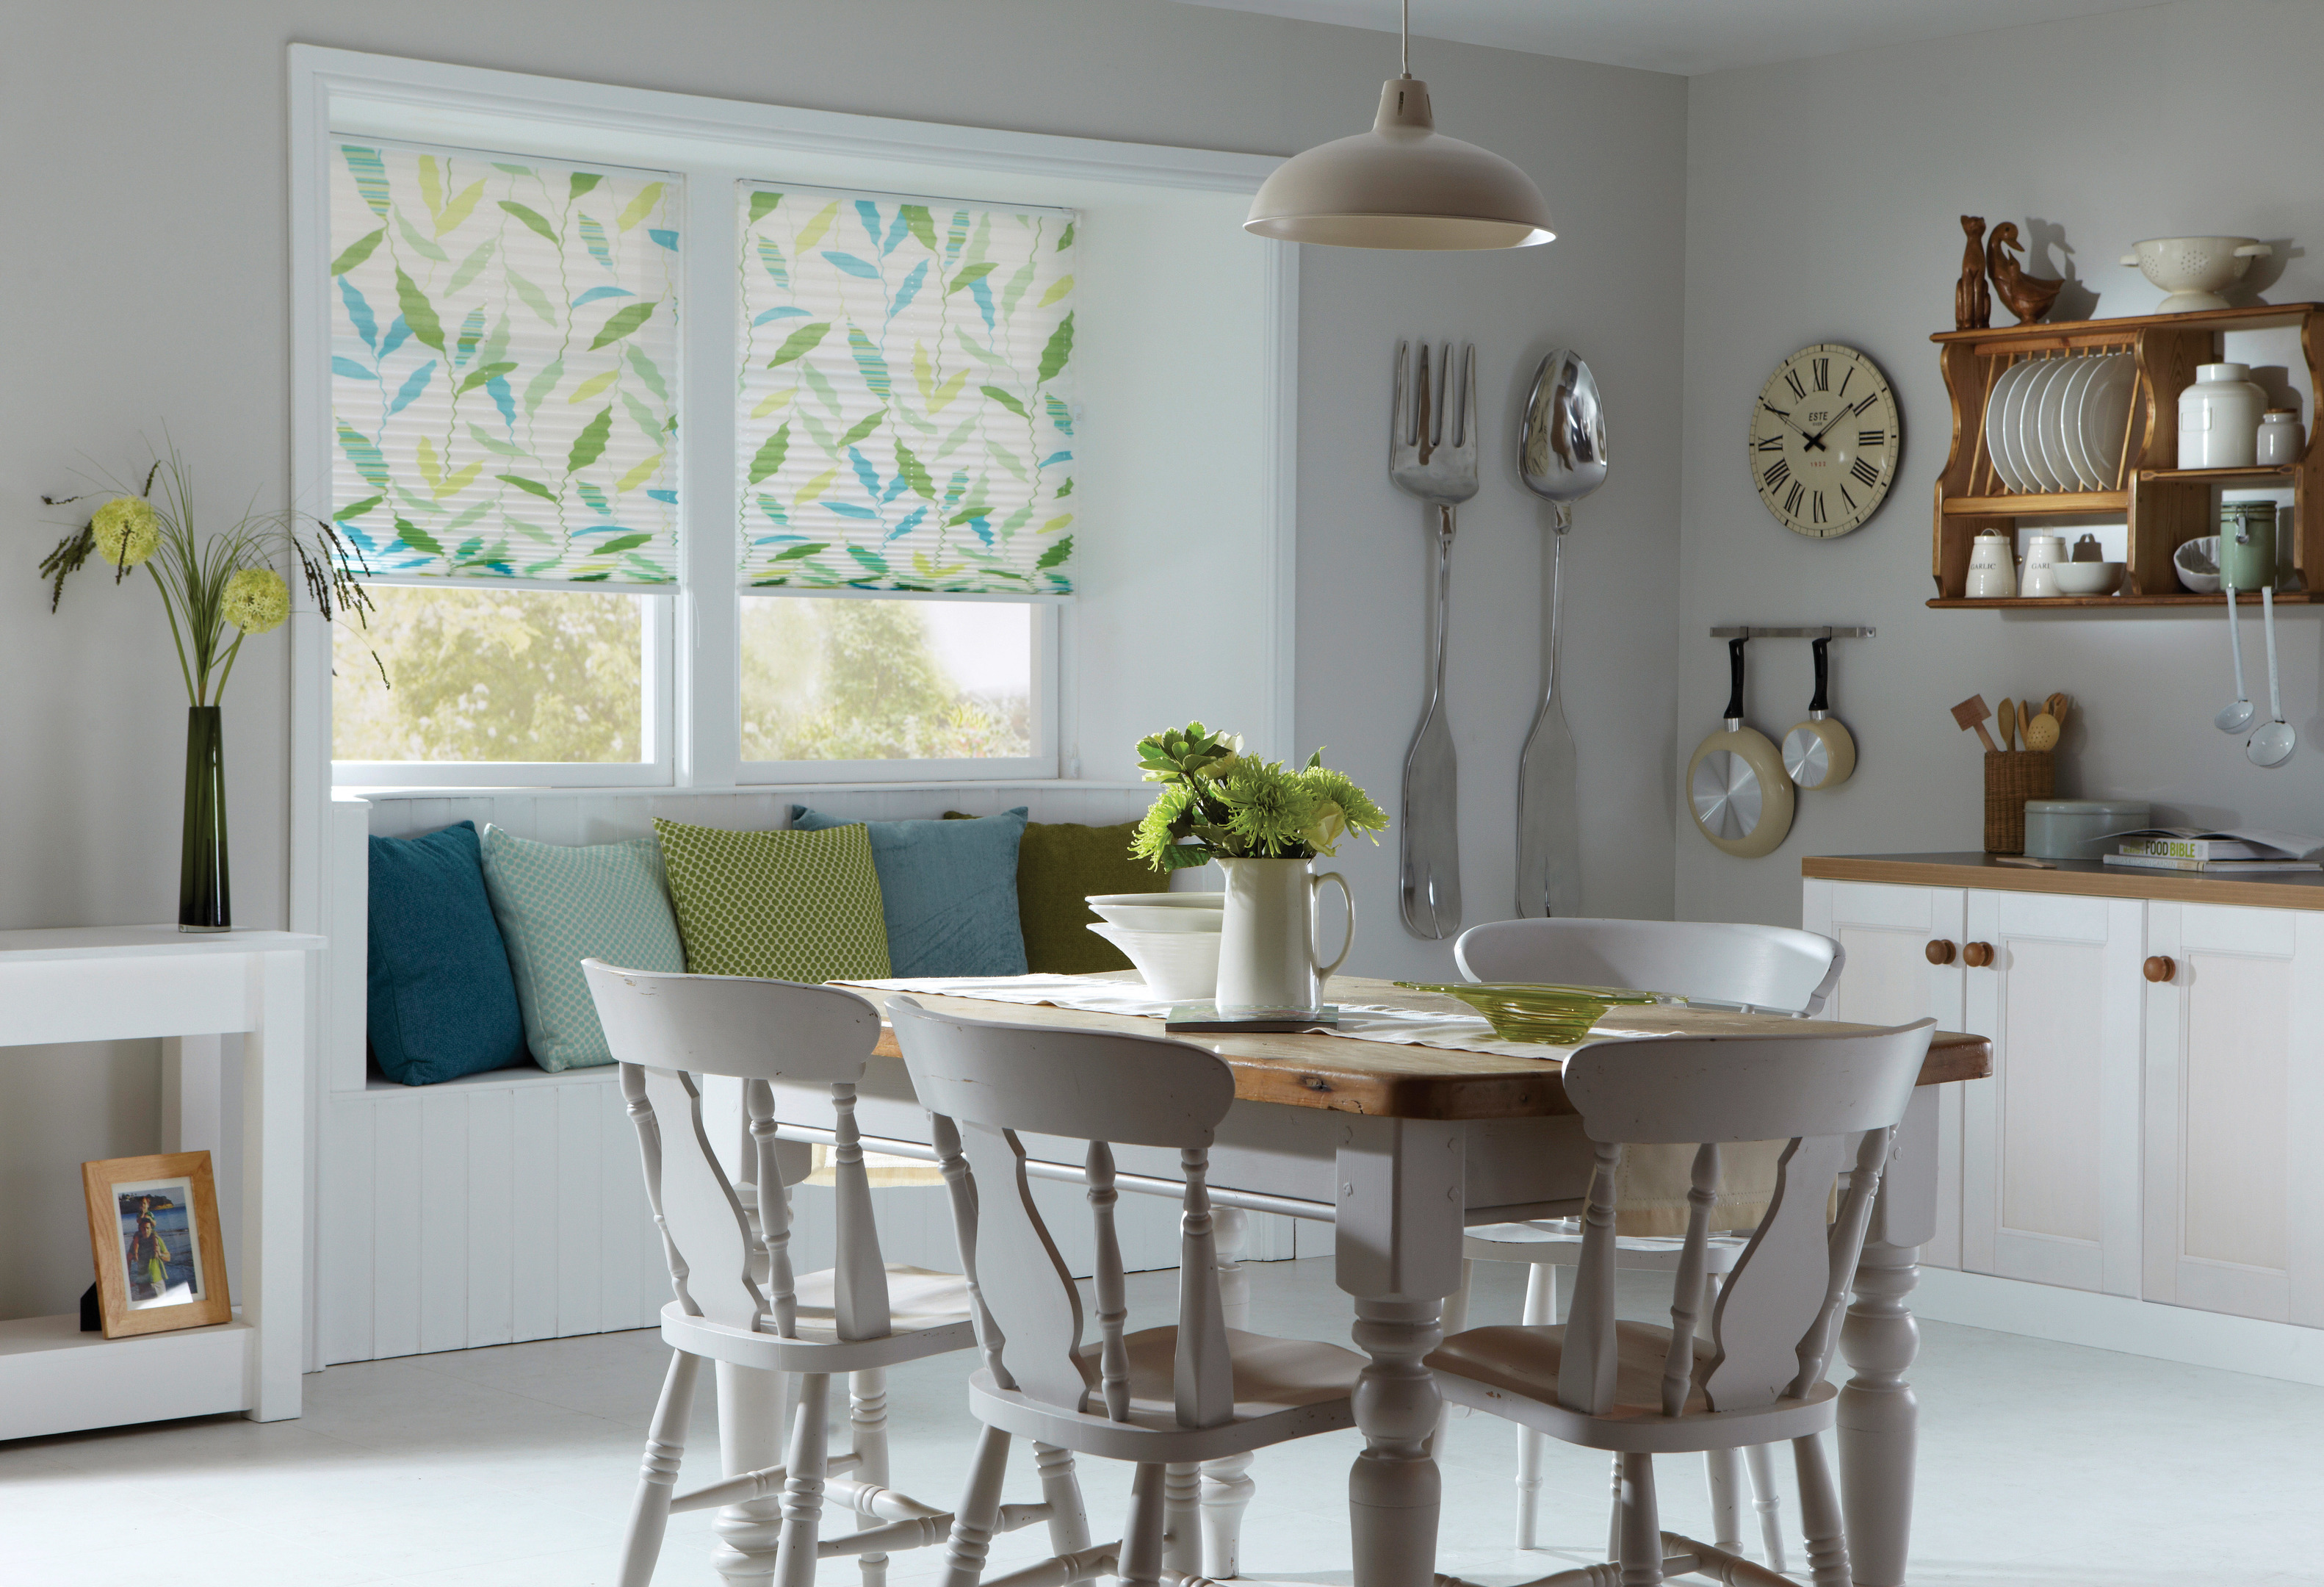 Apollo pleated leaf print blinds